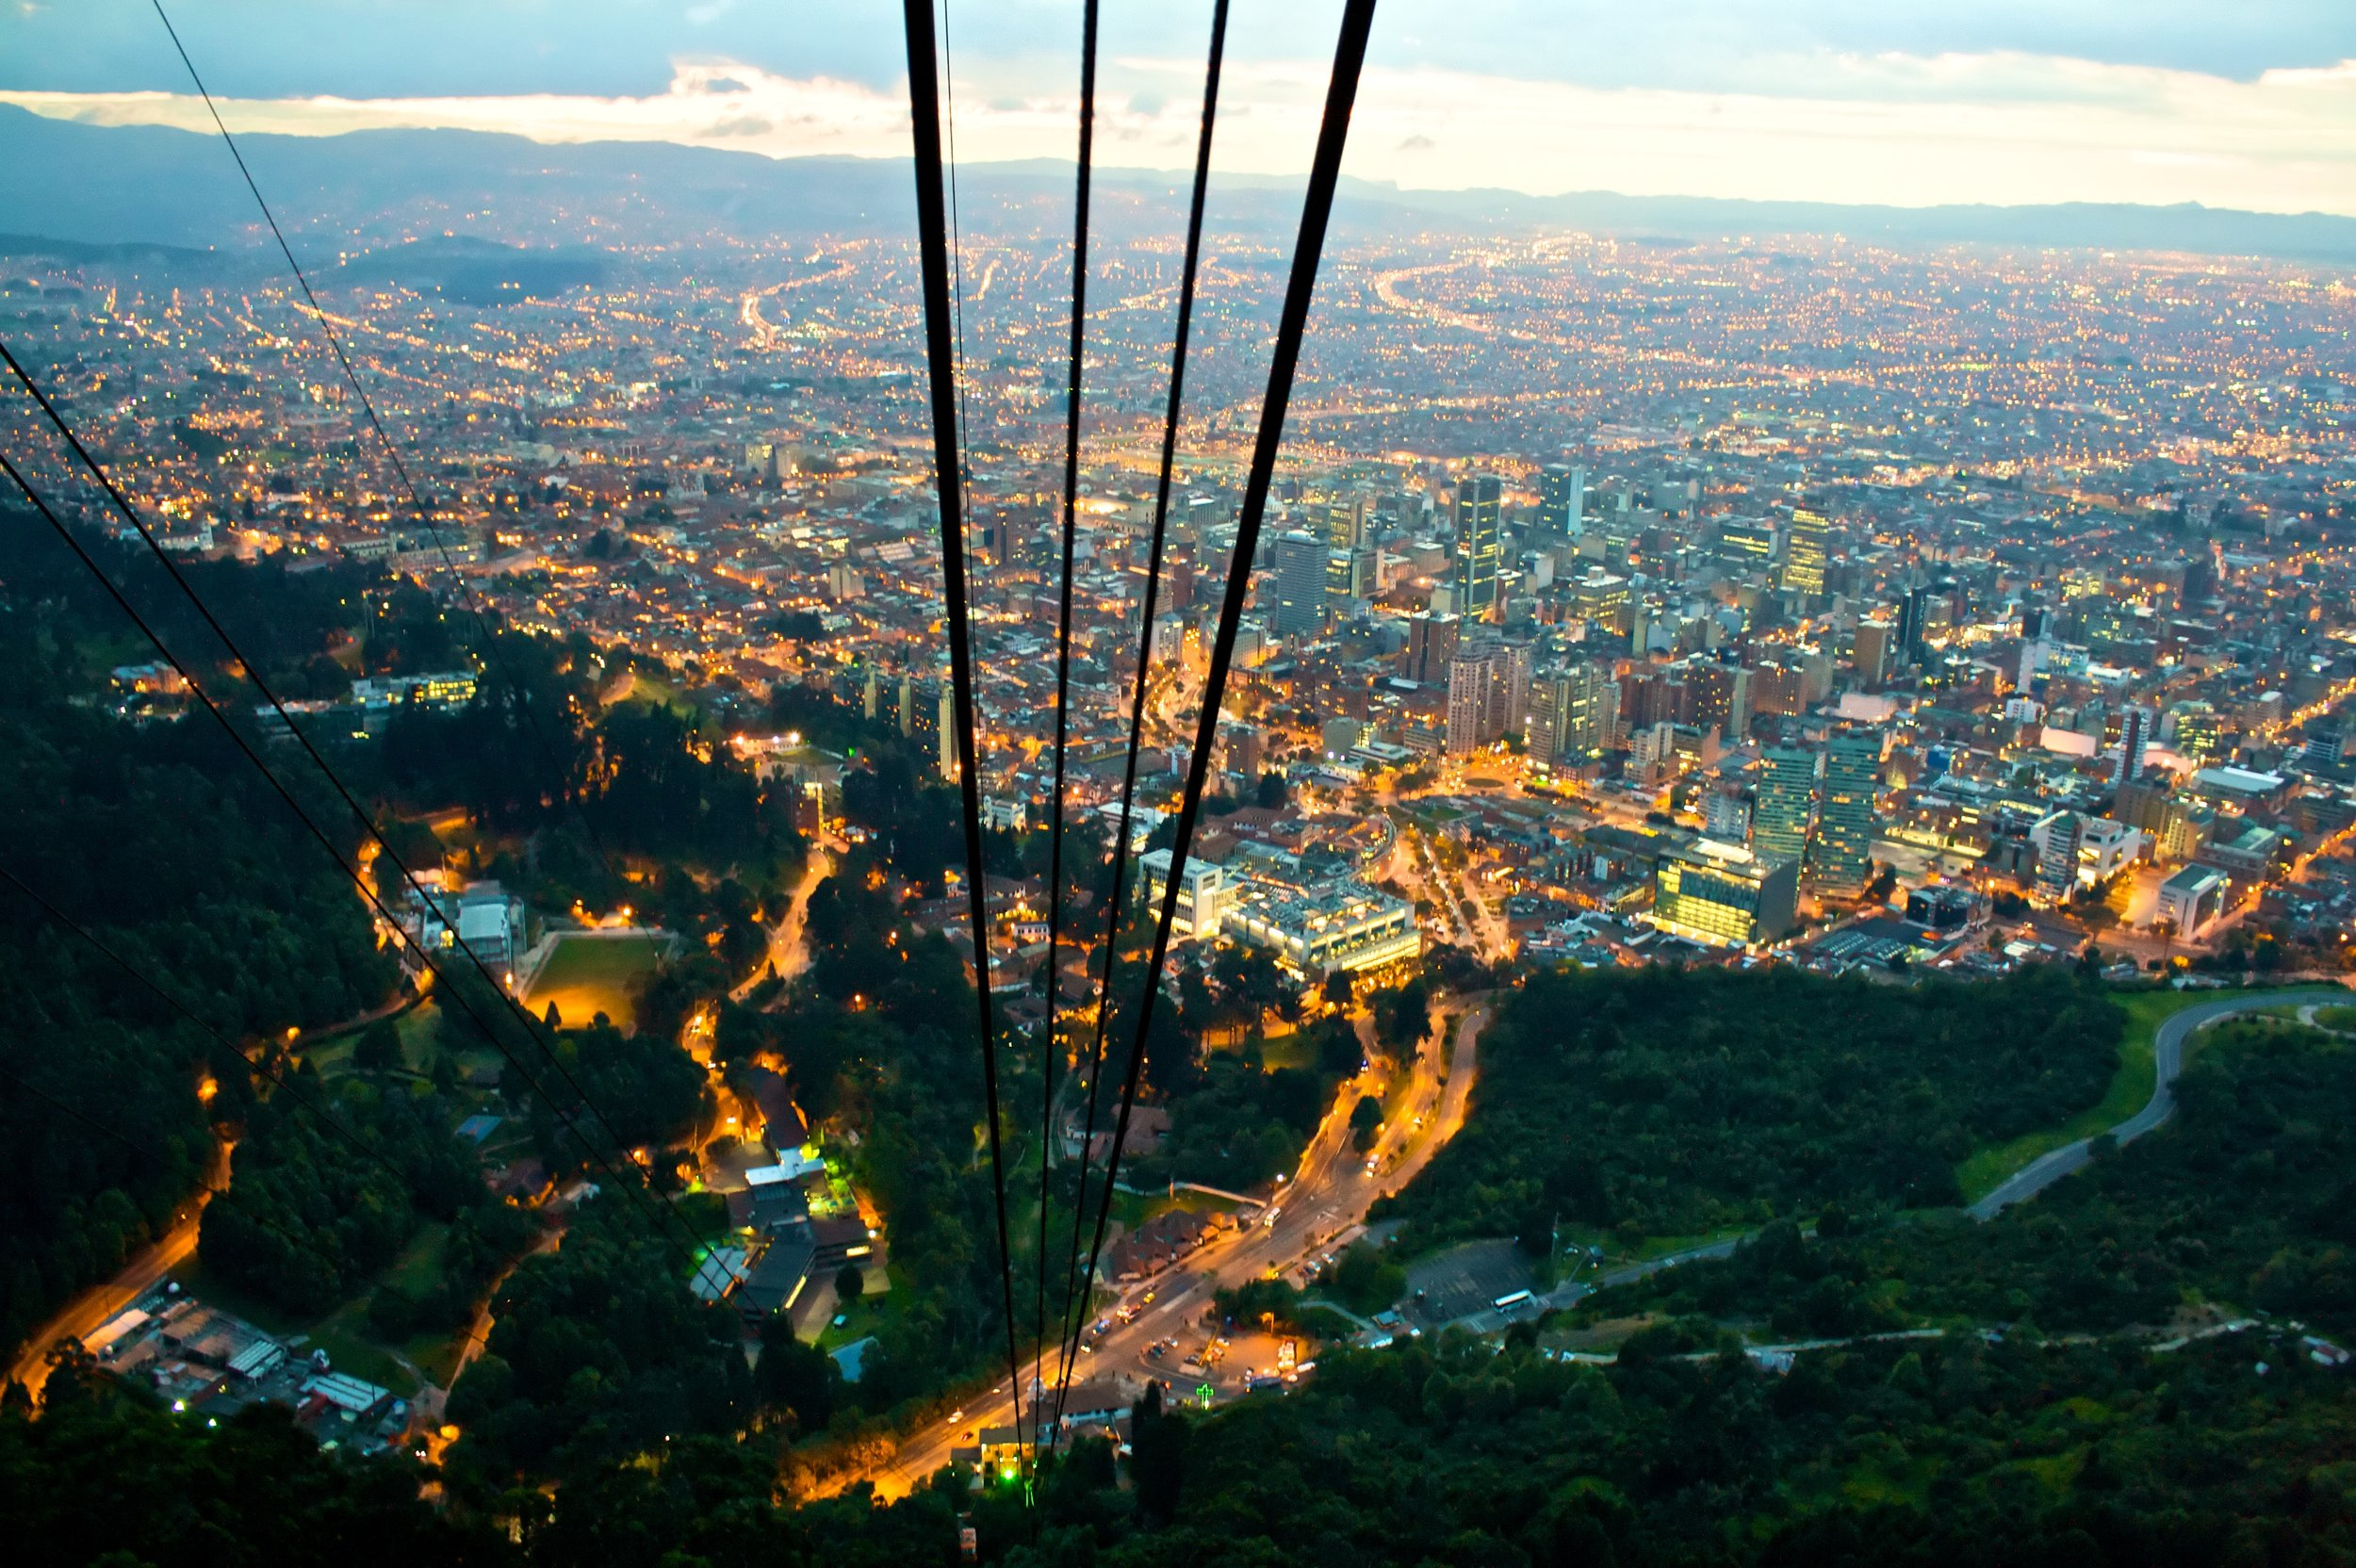 Bogota from the top of Monserrate Hill